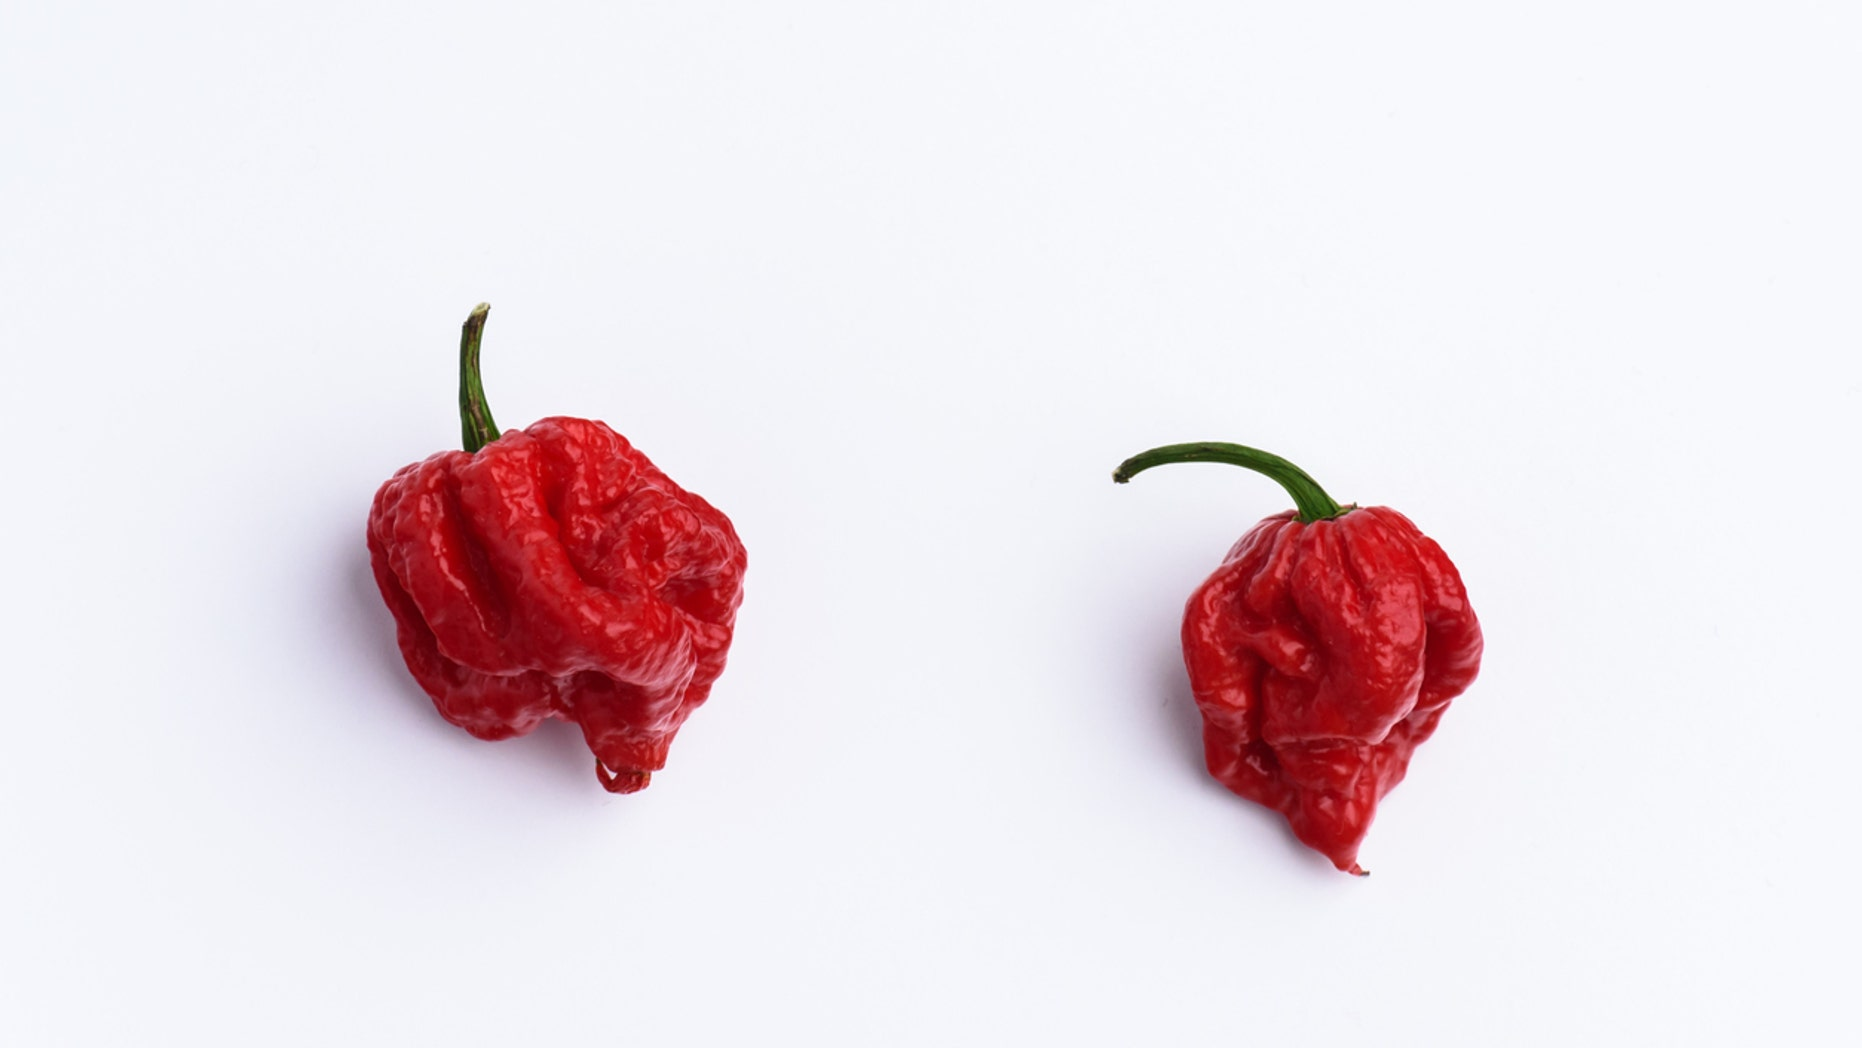 The chips are made with Carolina Reaper peppers, which may be the hottest in the world.